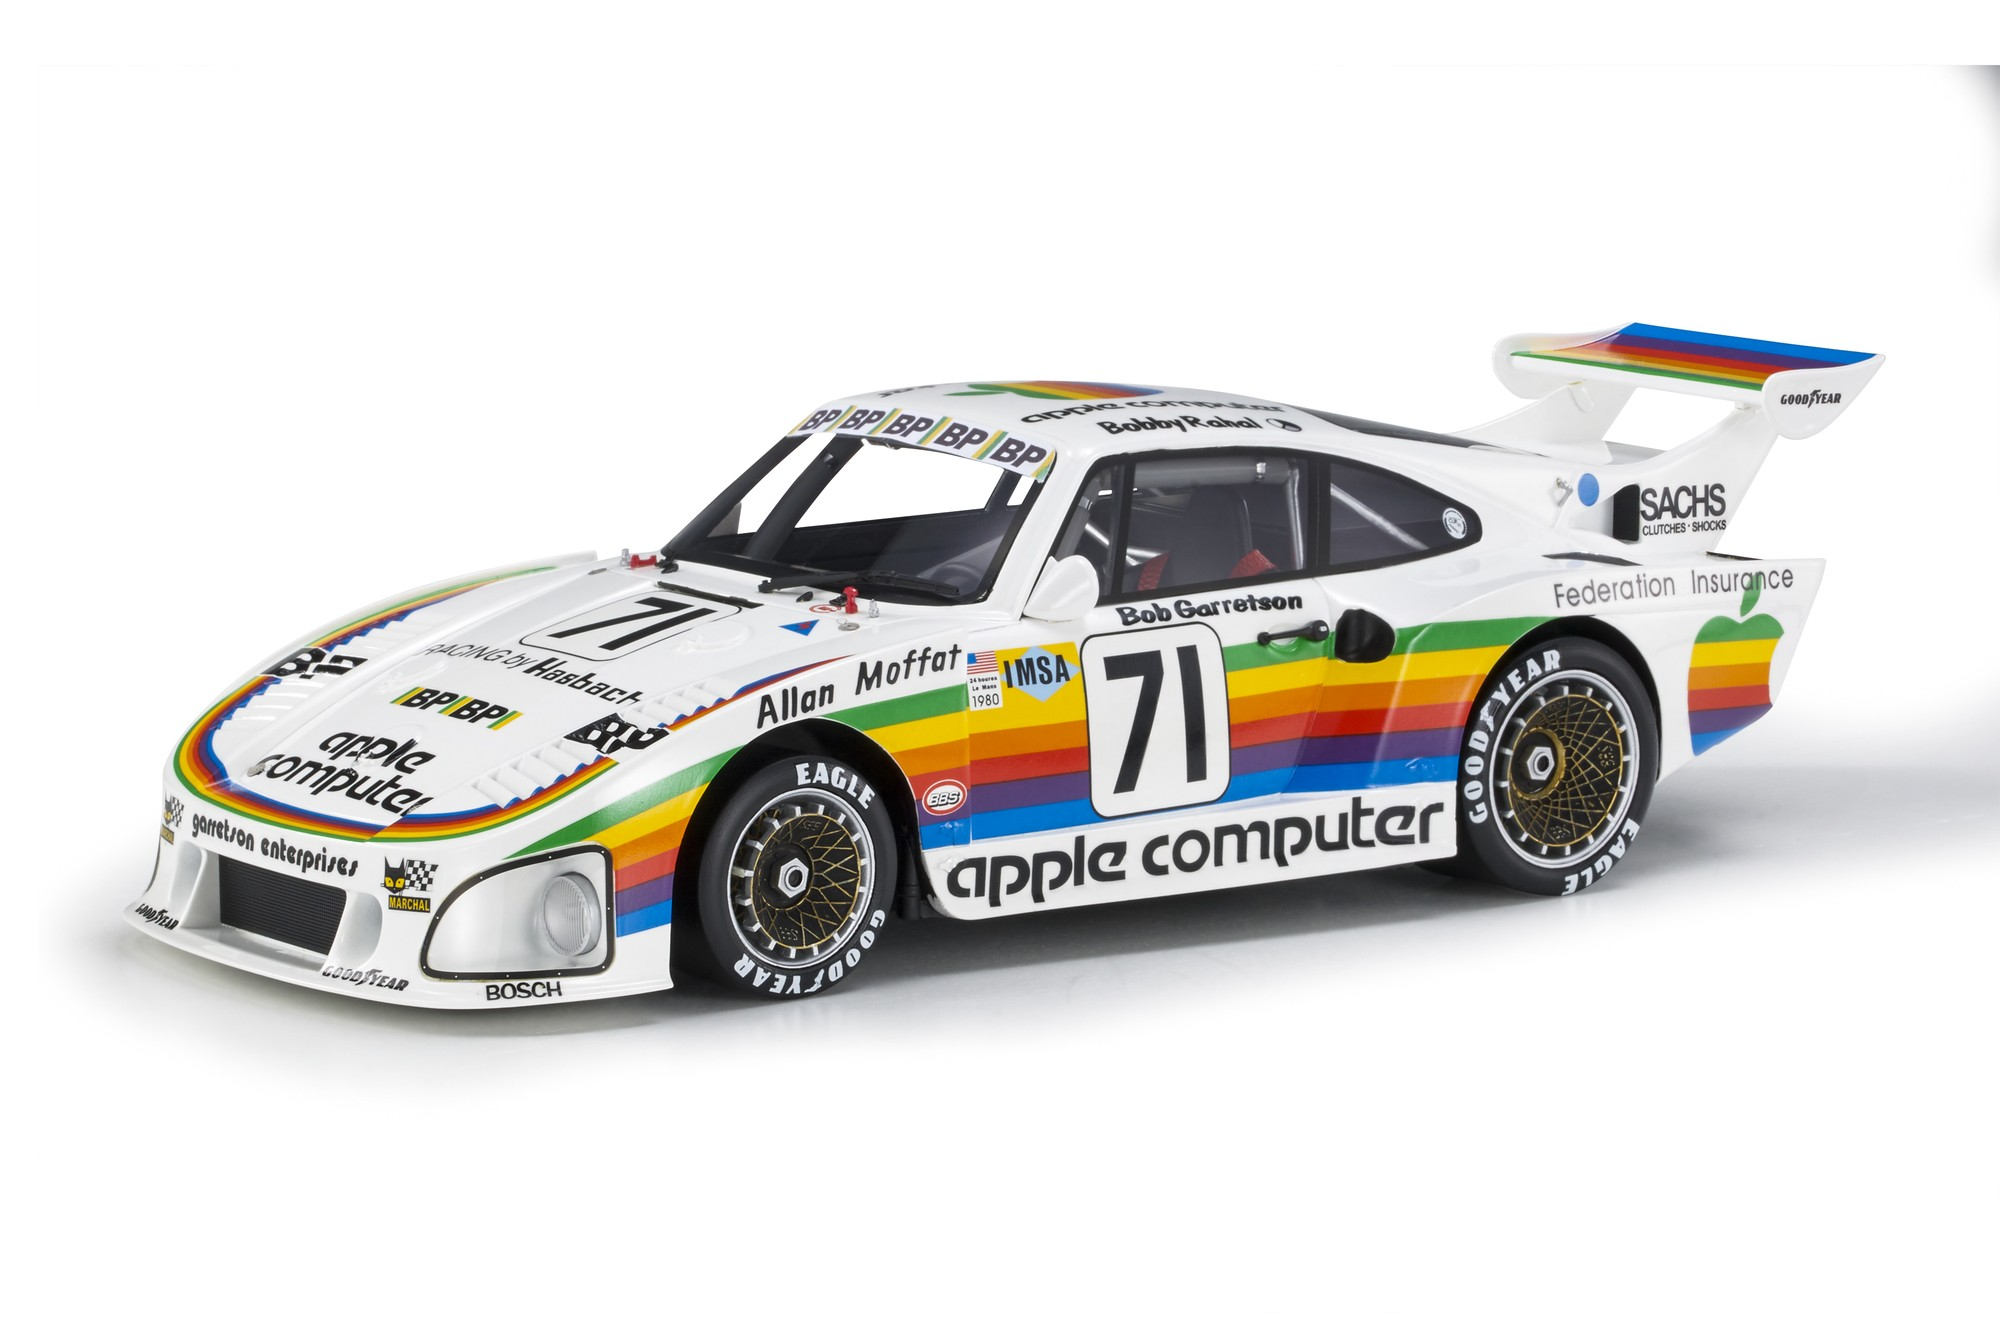 Porsche 935K3 #71 Rahal/Moffat/Garretson 24H Le Mans 1980 1:18 Top Marques Collectibles